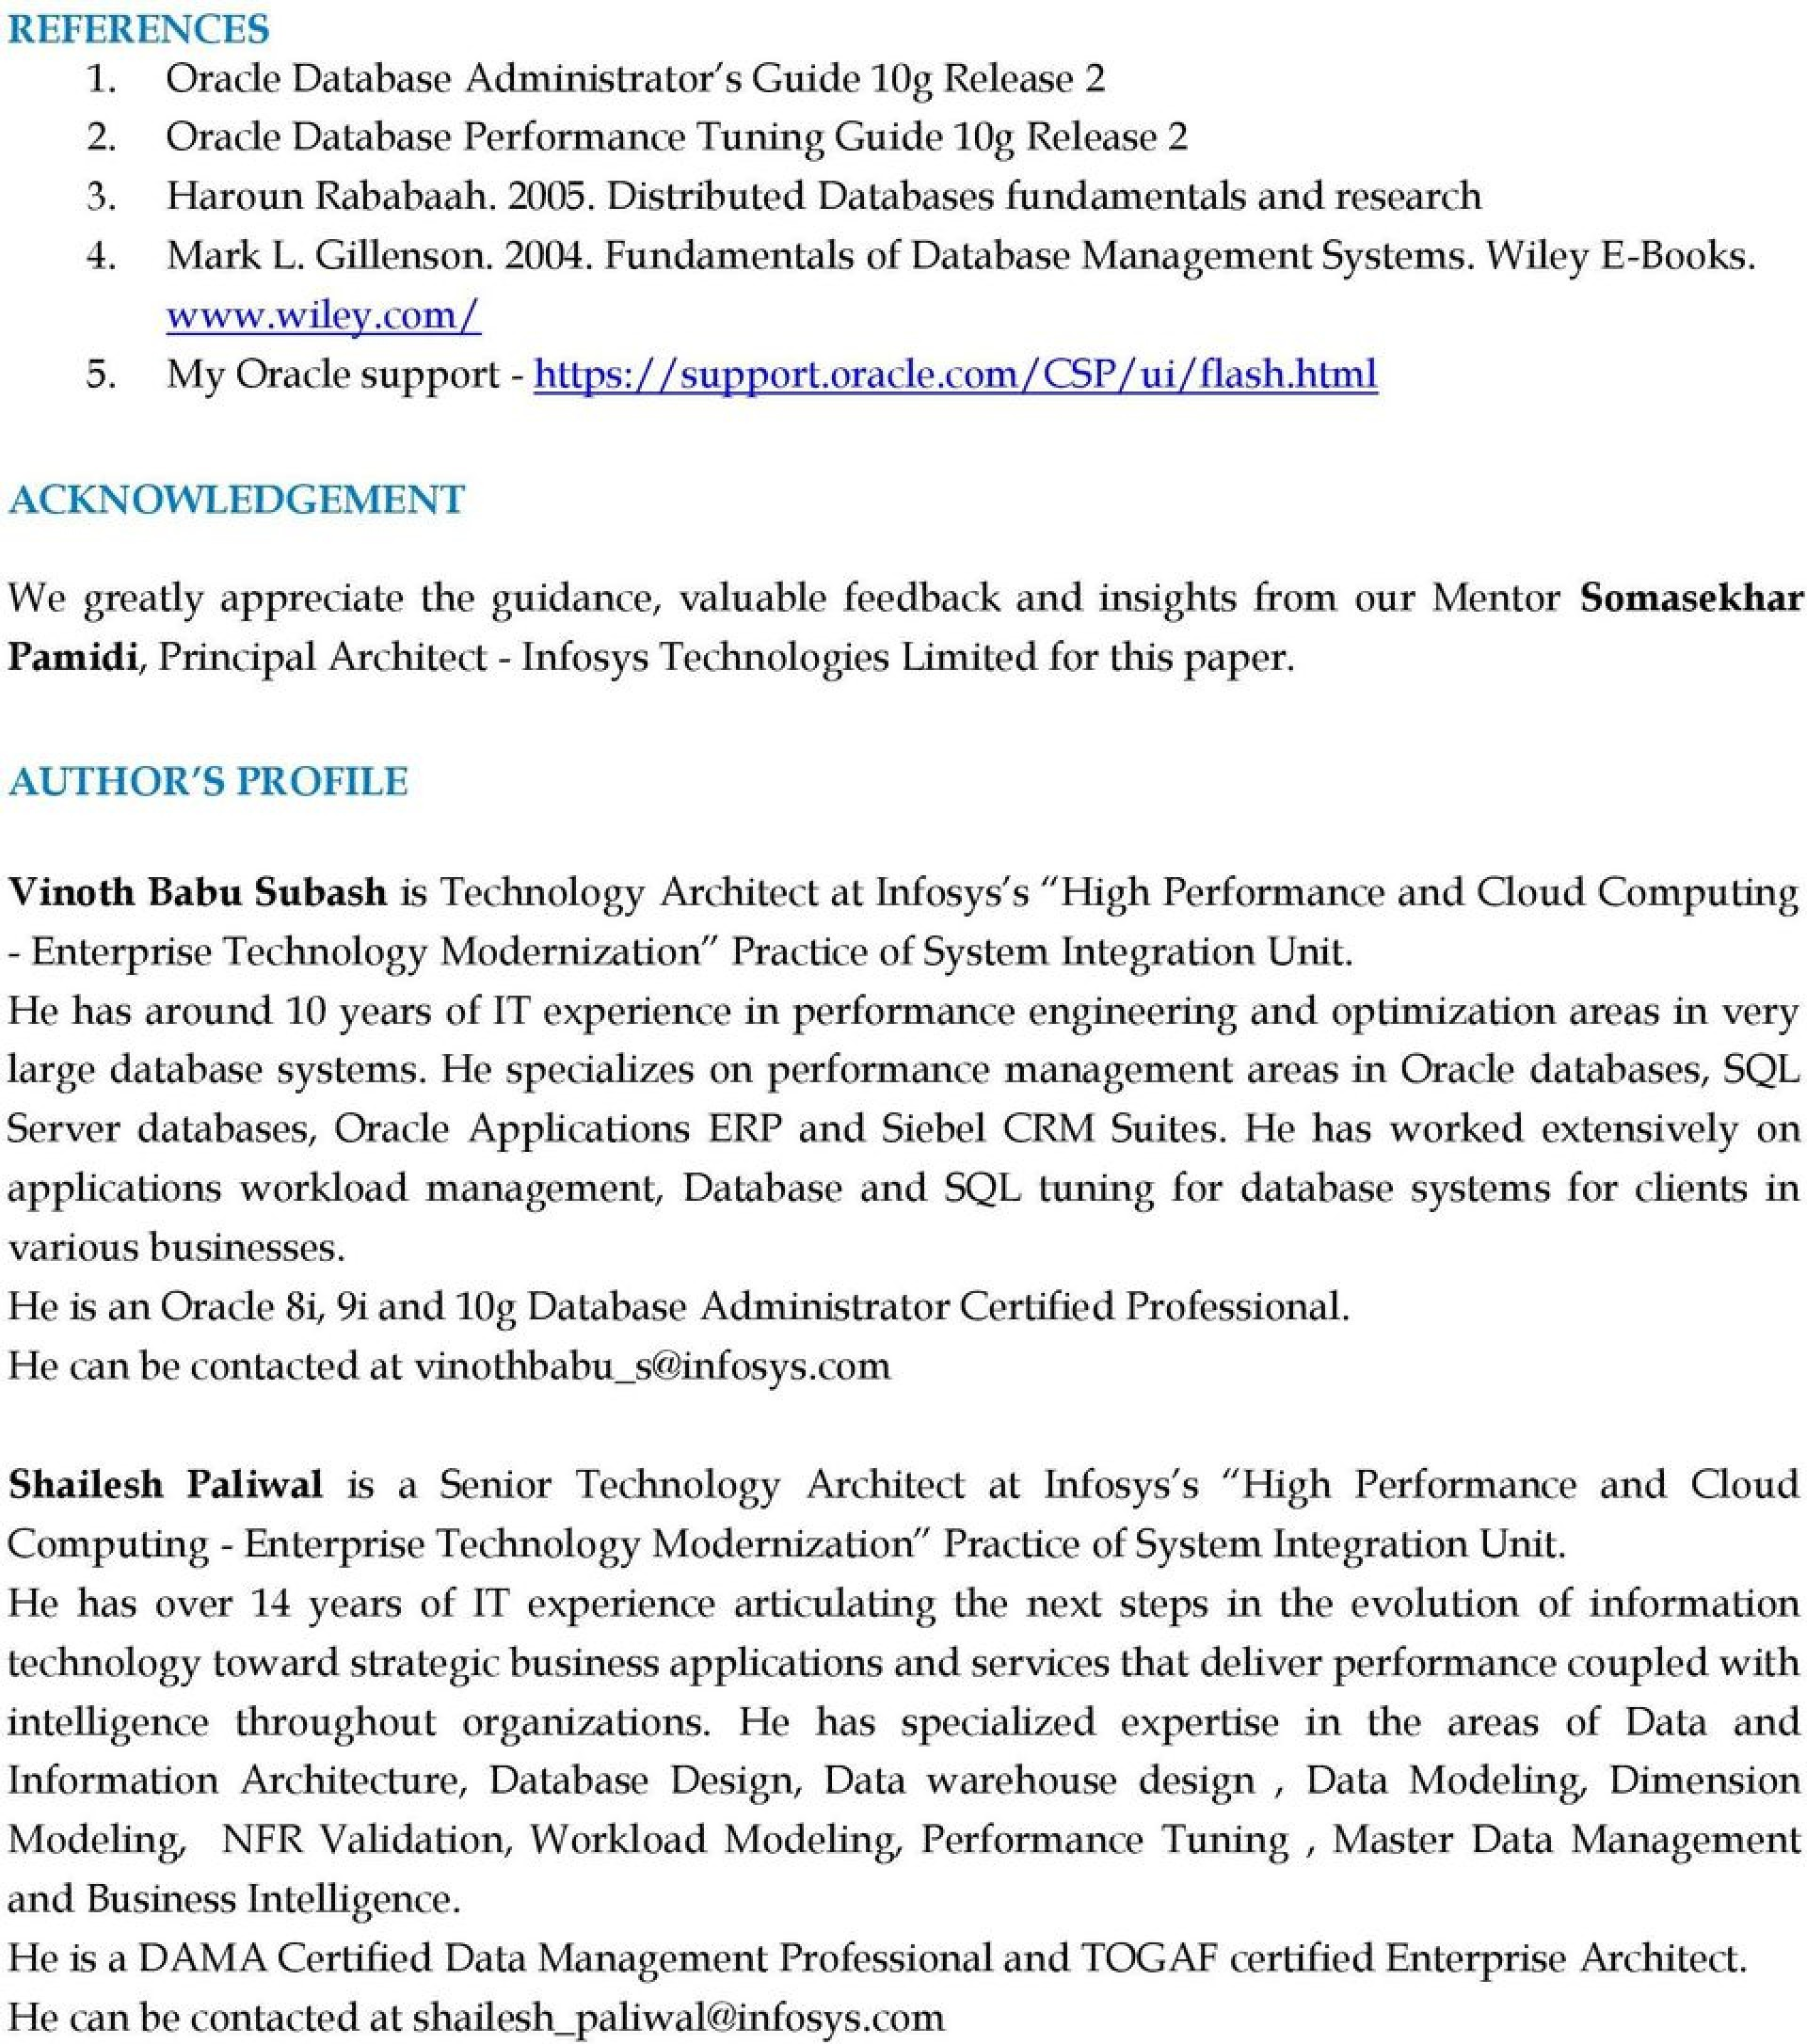 019 Research Paper Database Page 14 Sensational Academic Used By Japanese National Organizations Papers On Distributed Security Medical 1920